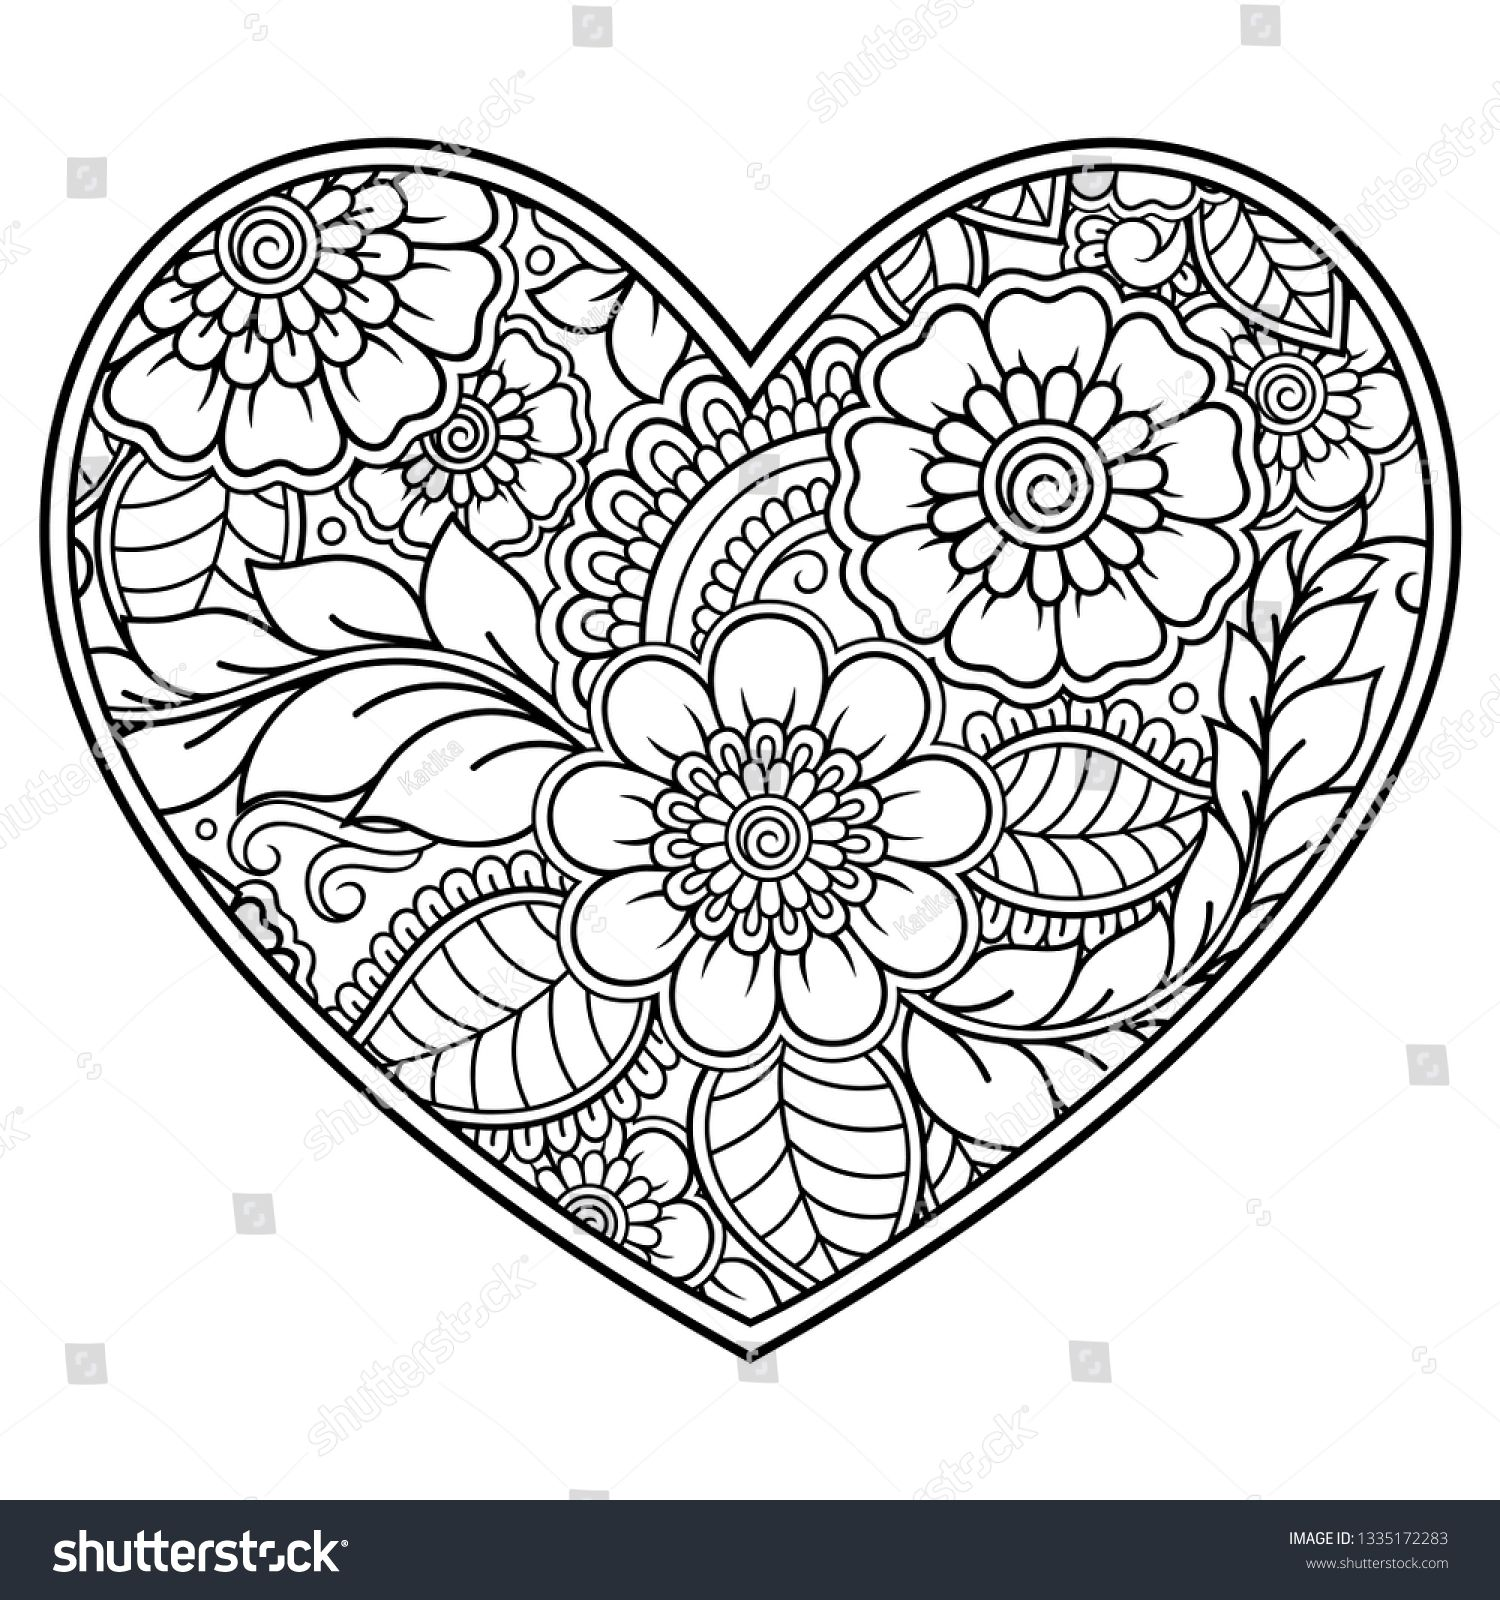 Pin Na Doske Heart Coloring Pages